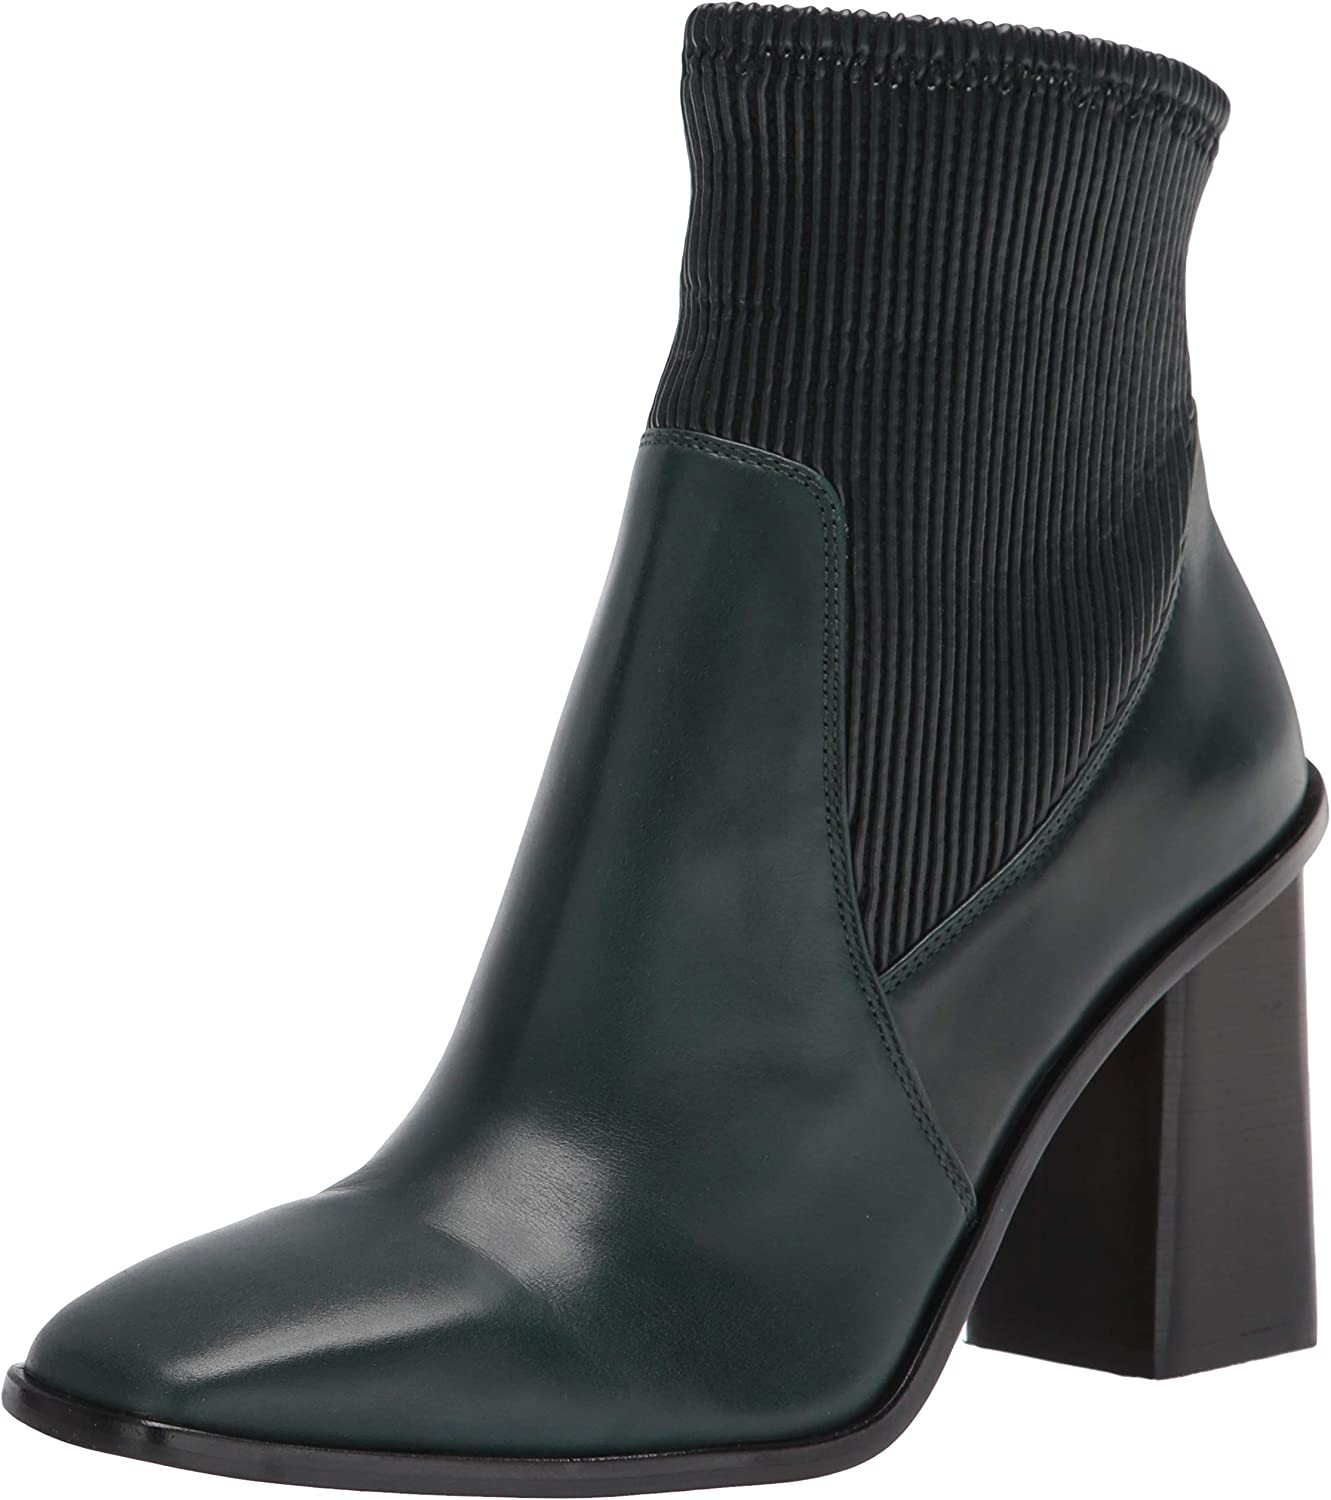 Vince Camuto Women's Dellsie Fashion Boot Ankle